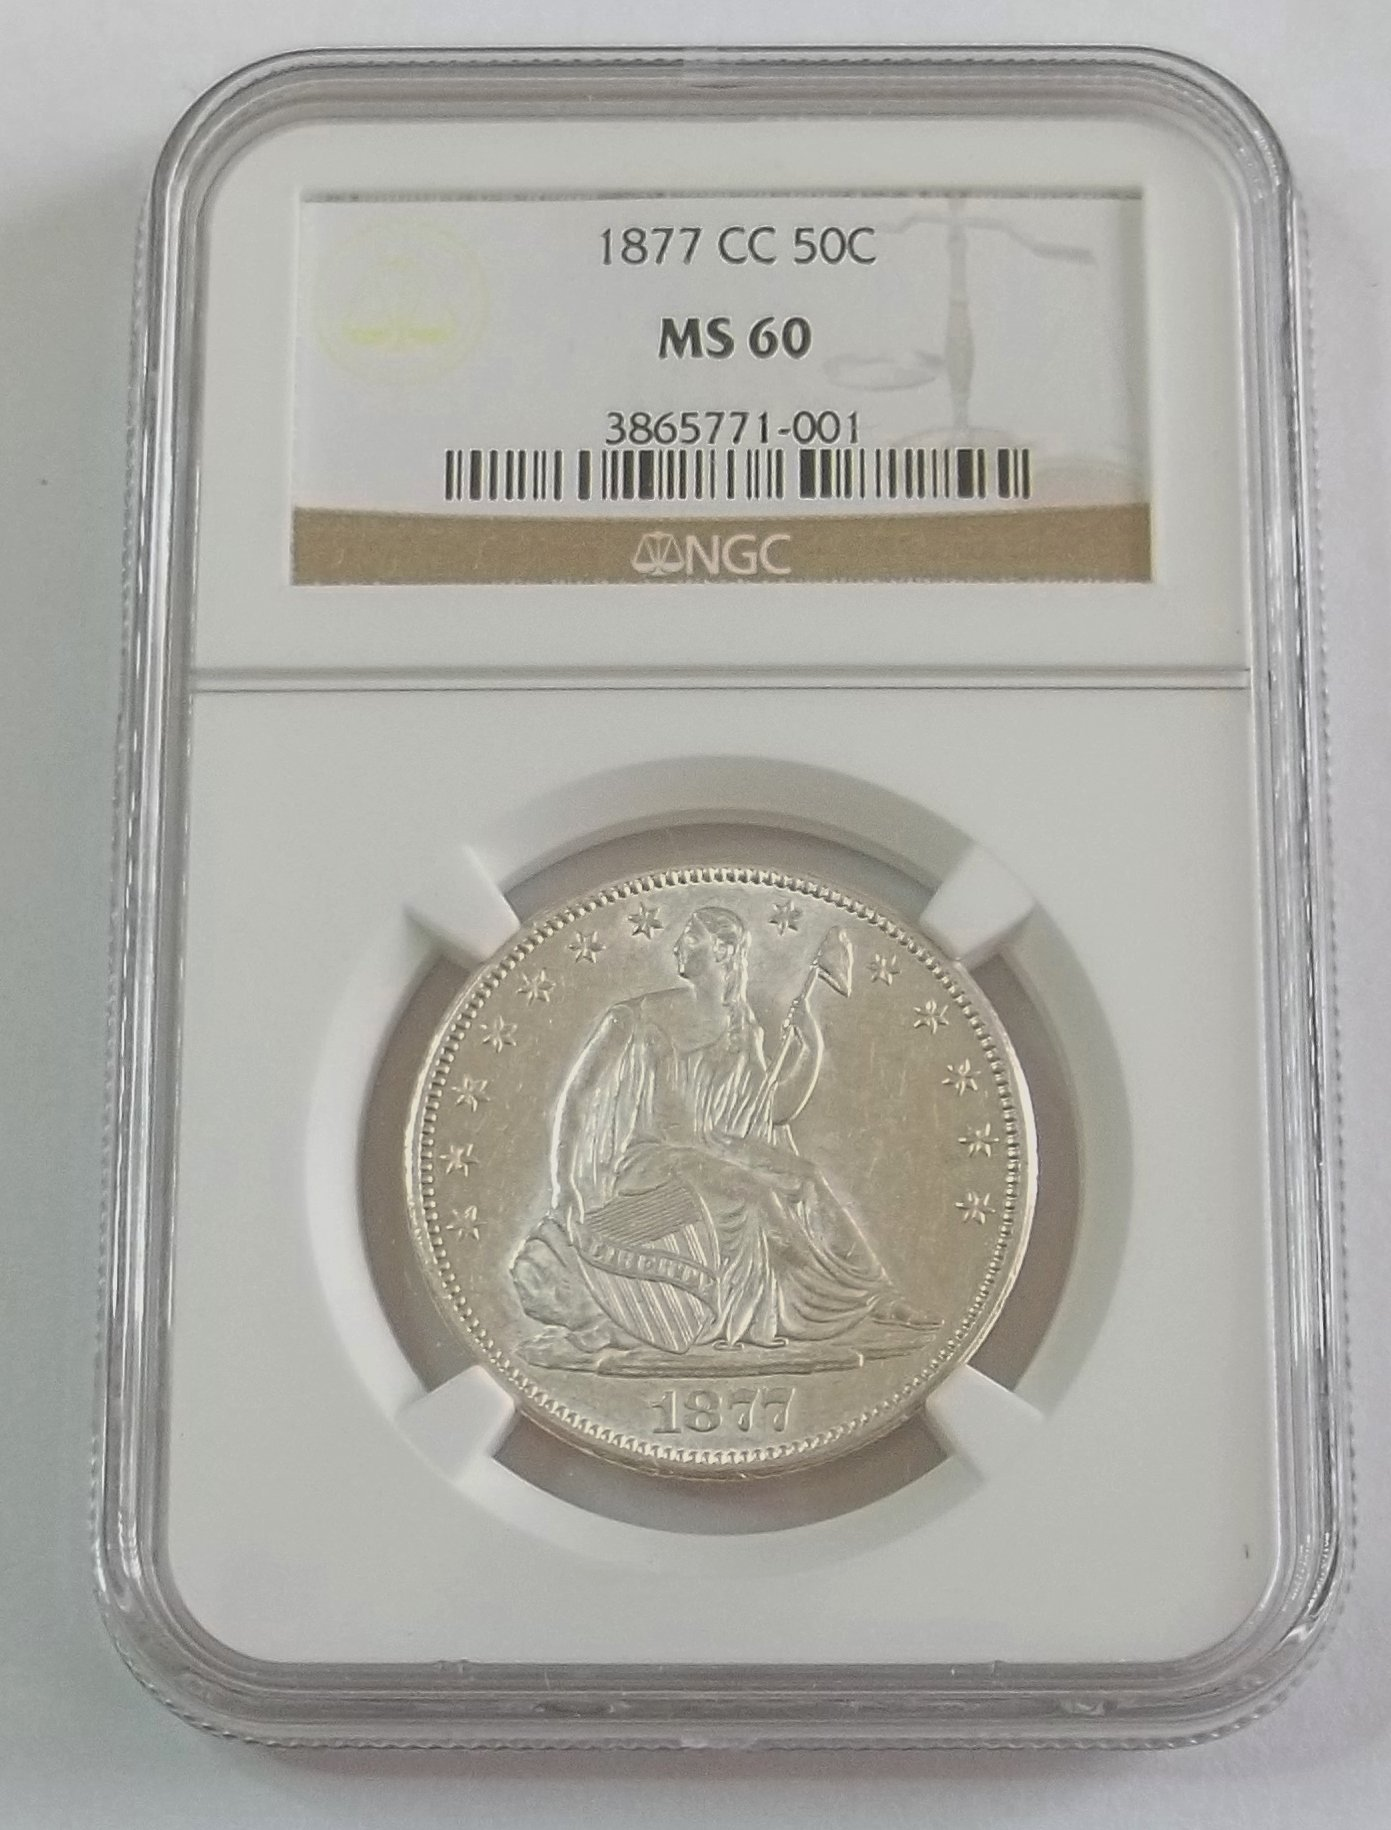 WE BUY GRADED COINS - VERMILLION ENTEPRISES